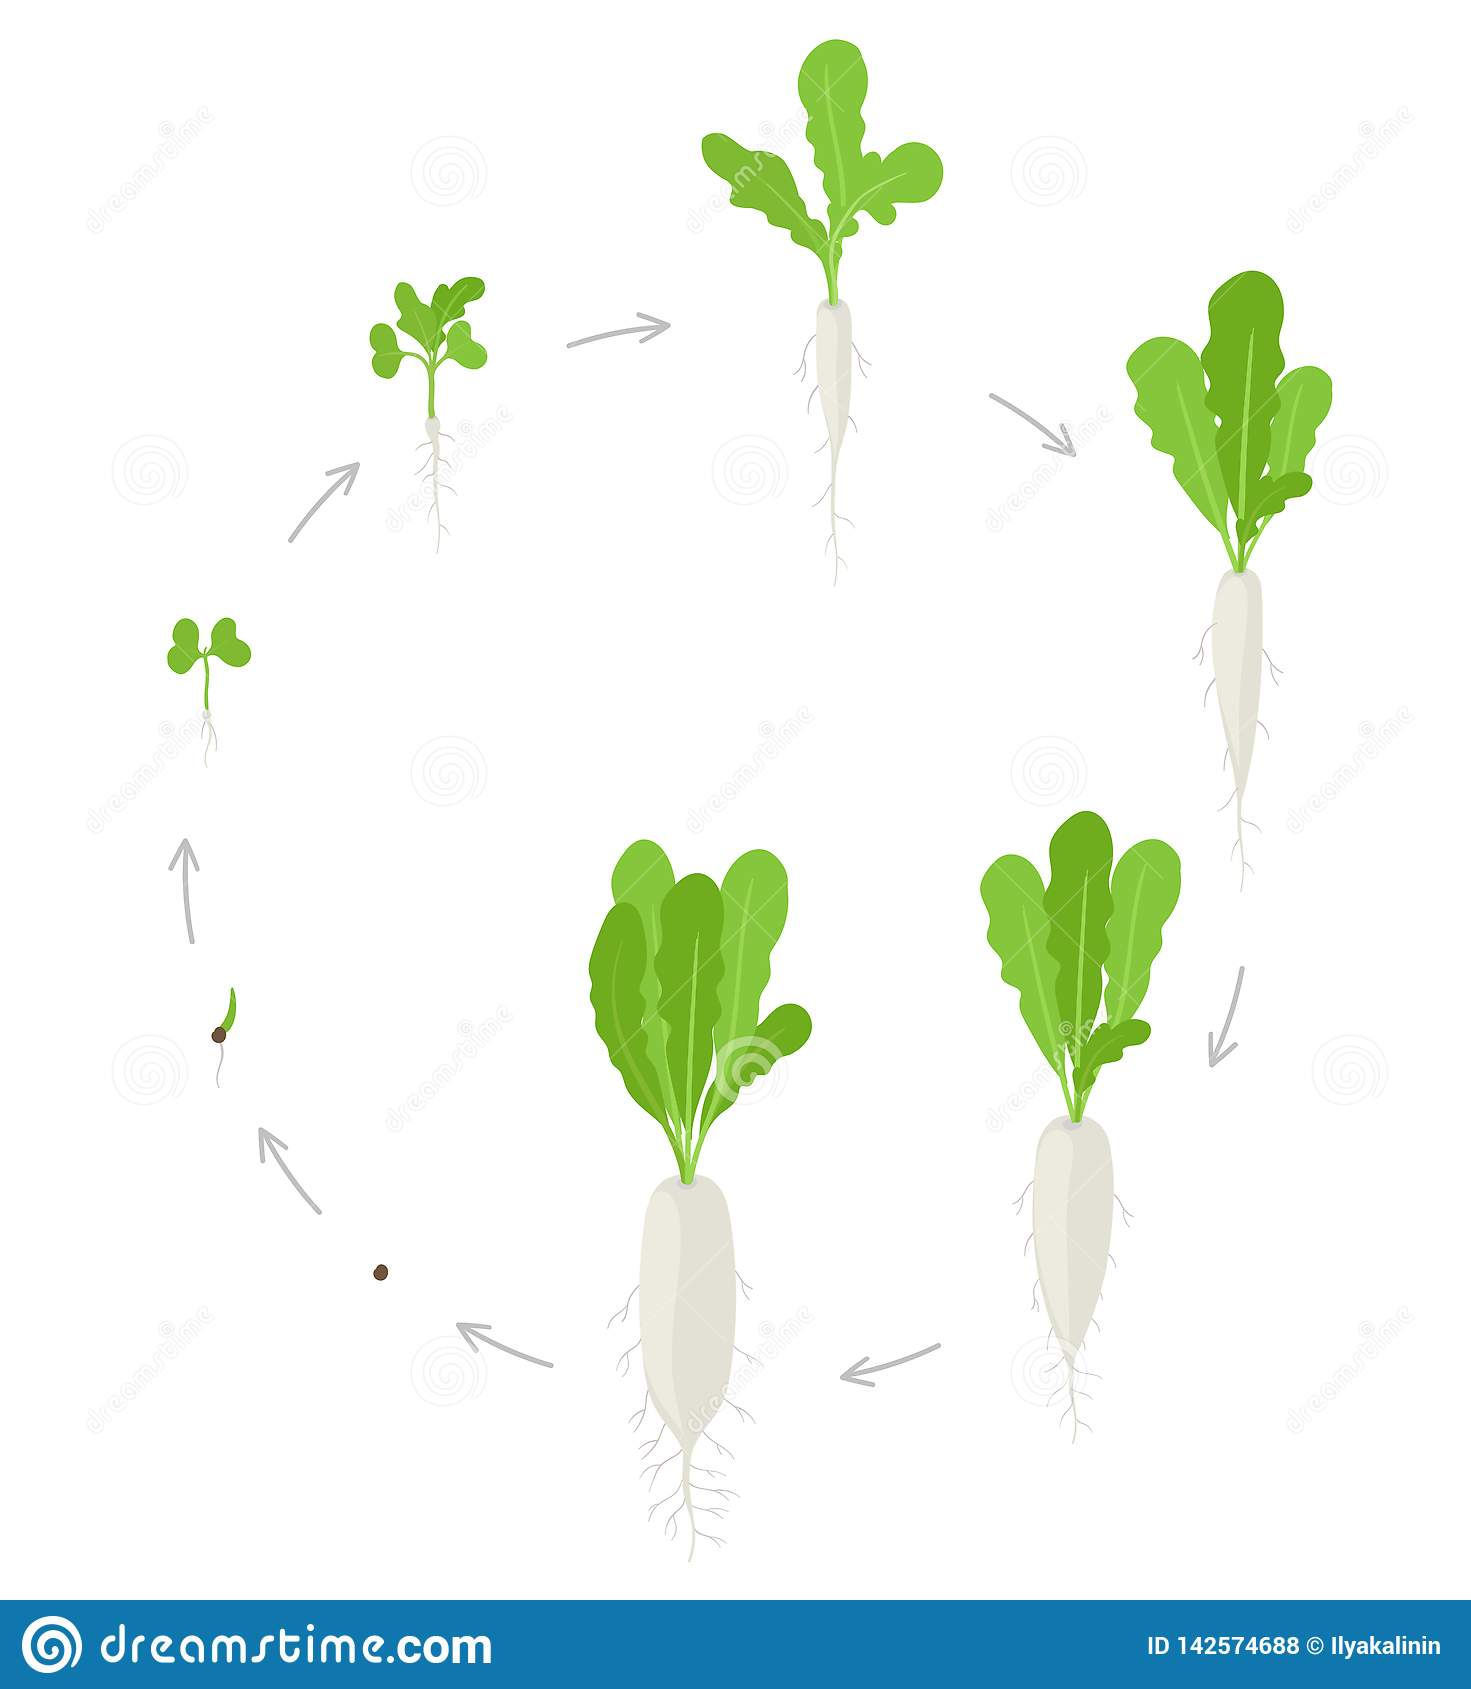 Round Crop Daikon Growth Stages Planting Of Long White